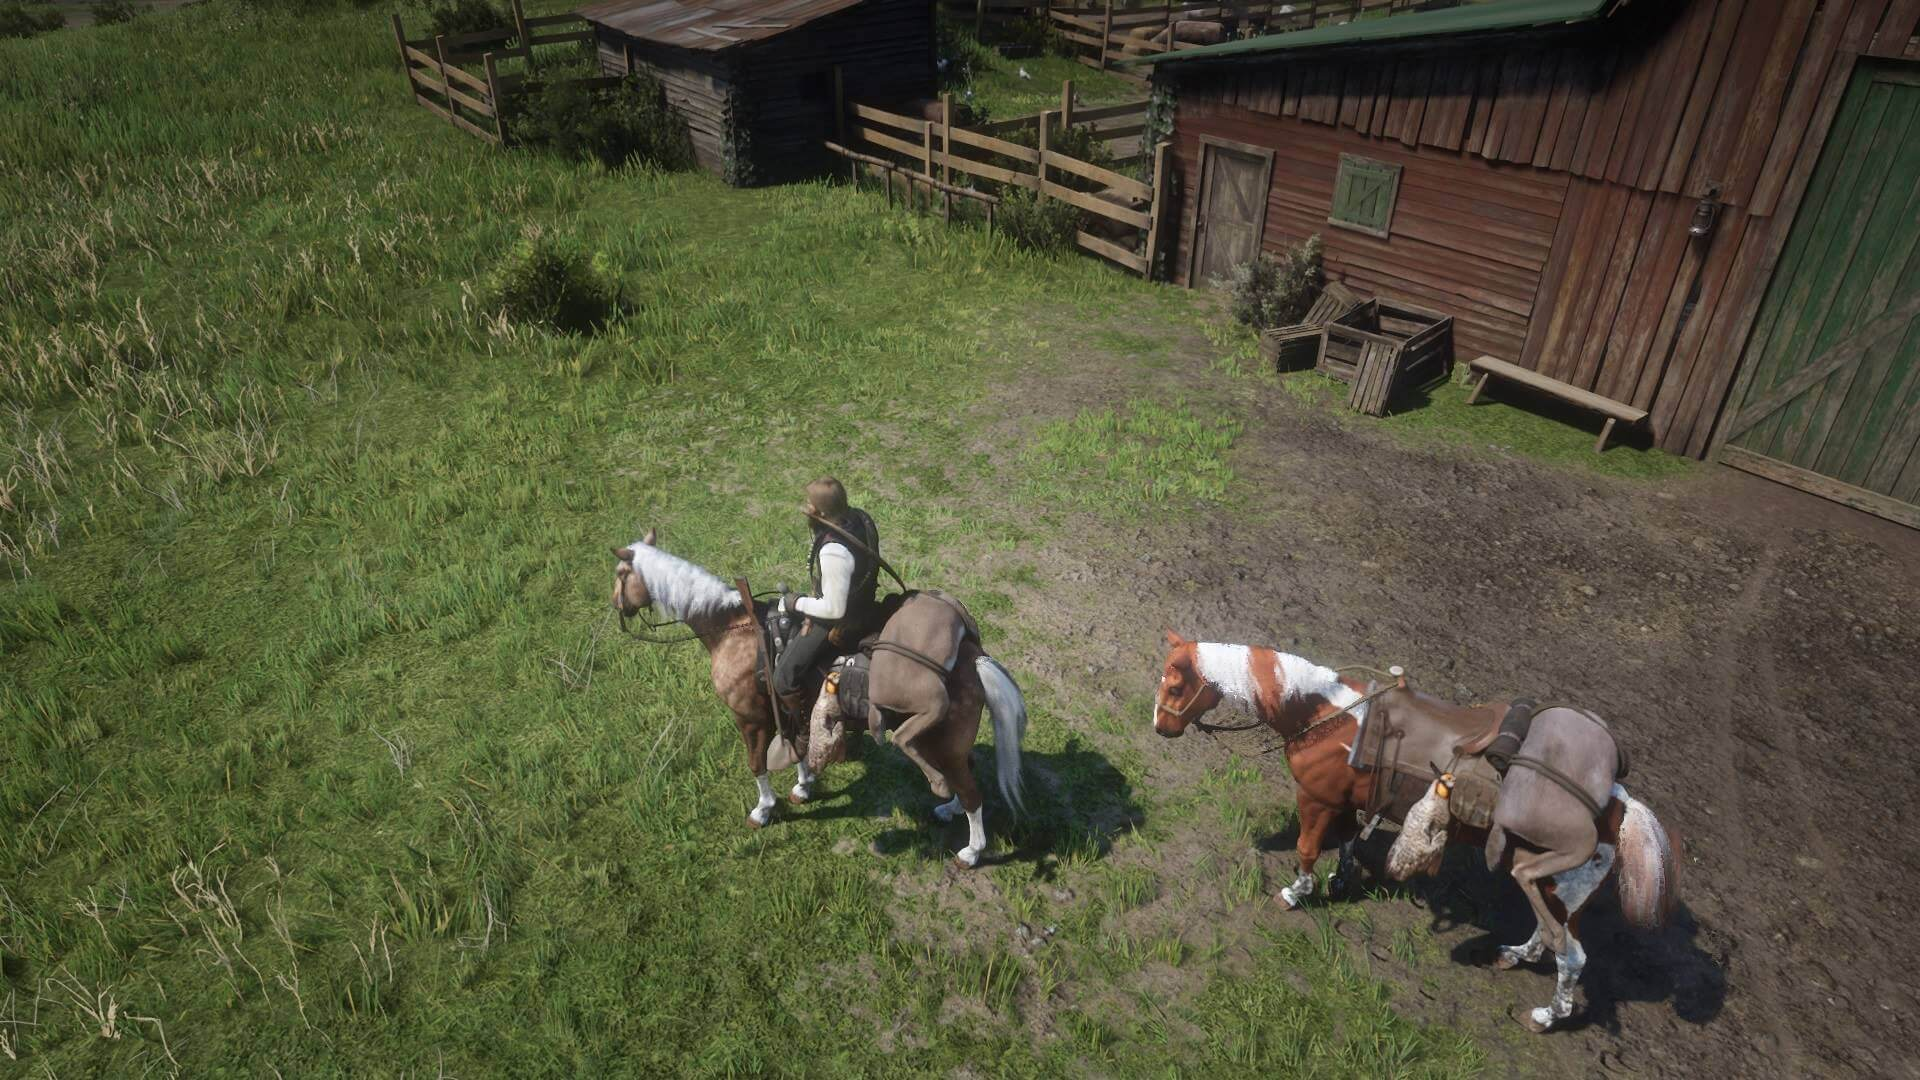 Hunting with horses in Red Dead Redemption 2